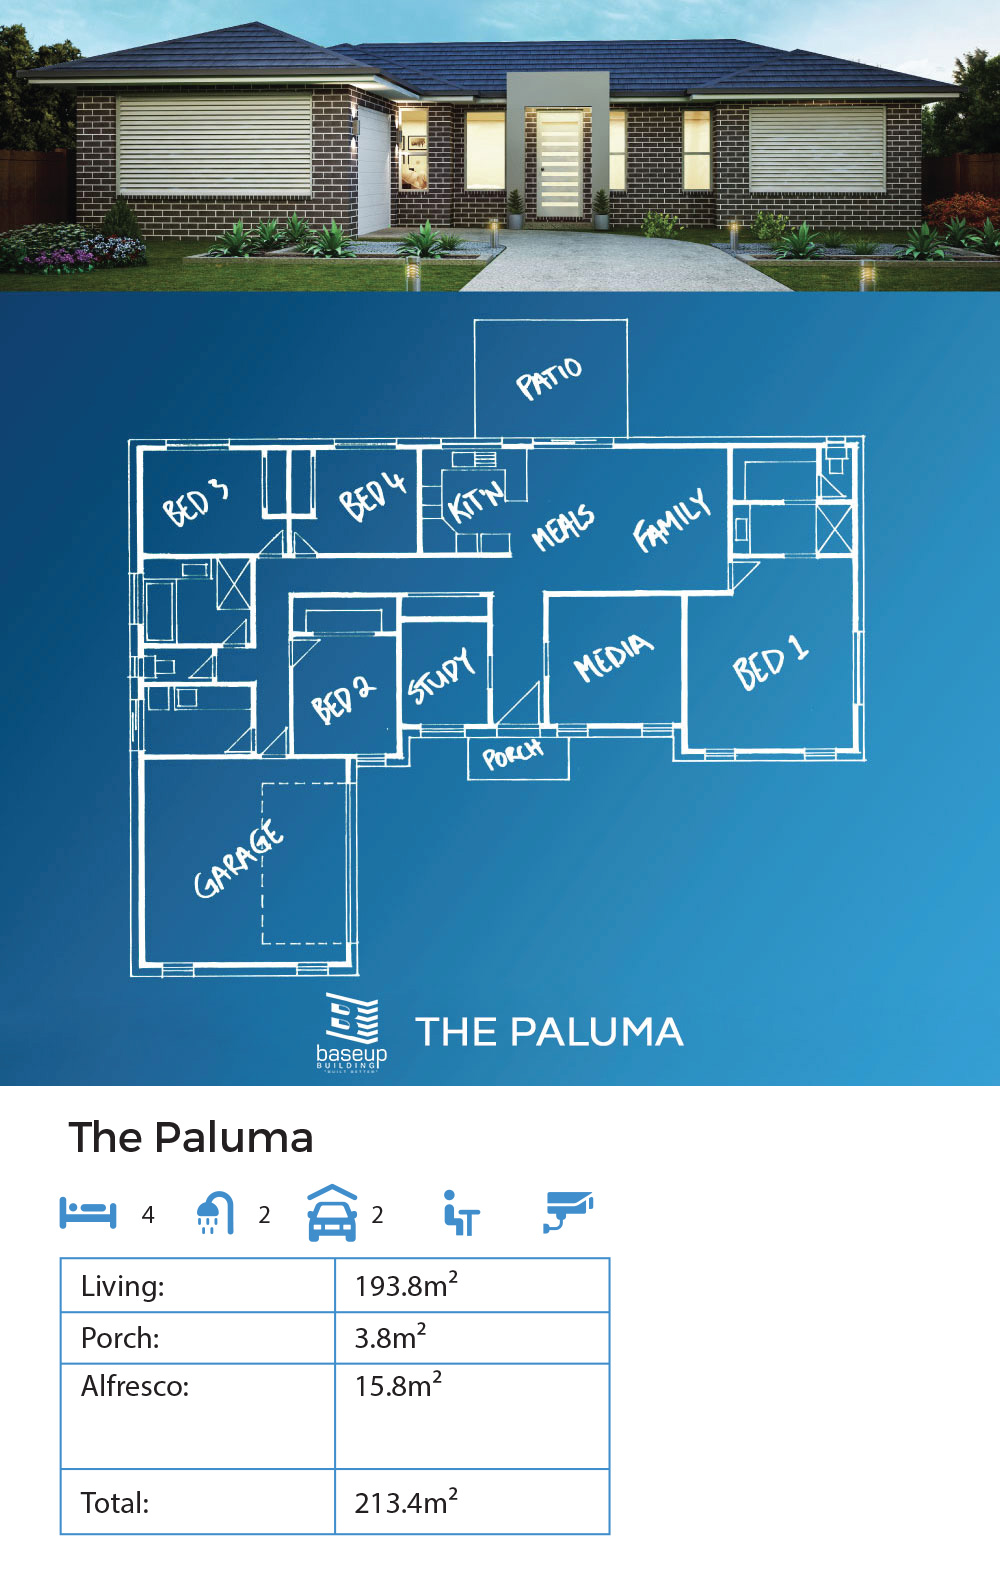 The Paluma